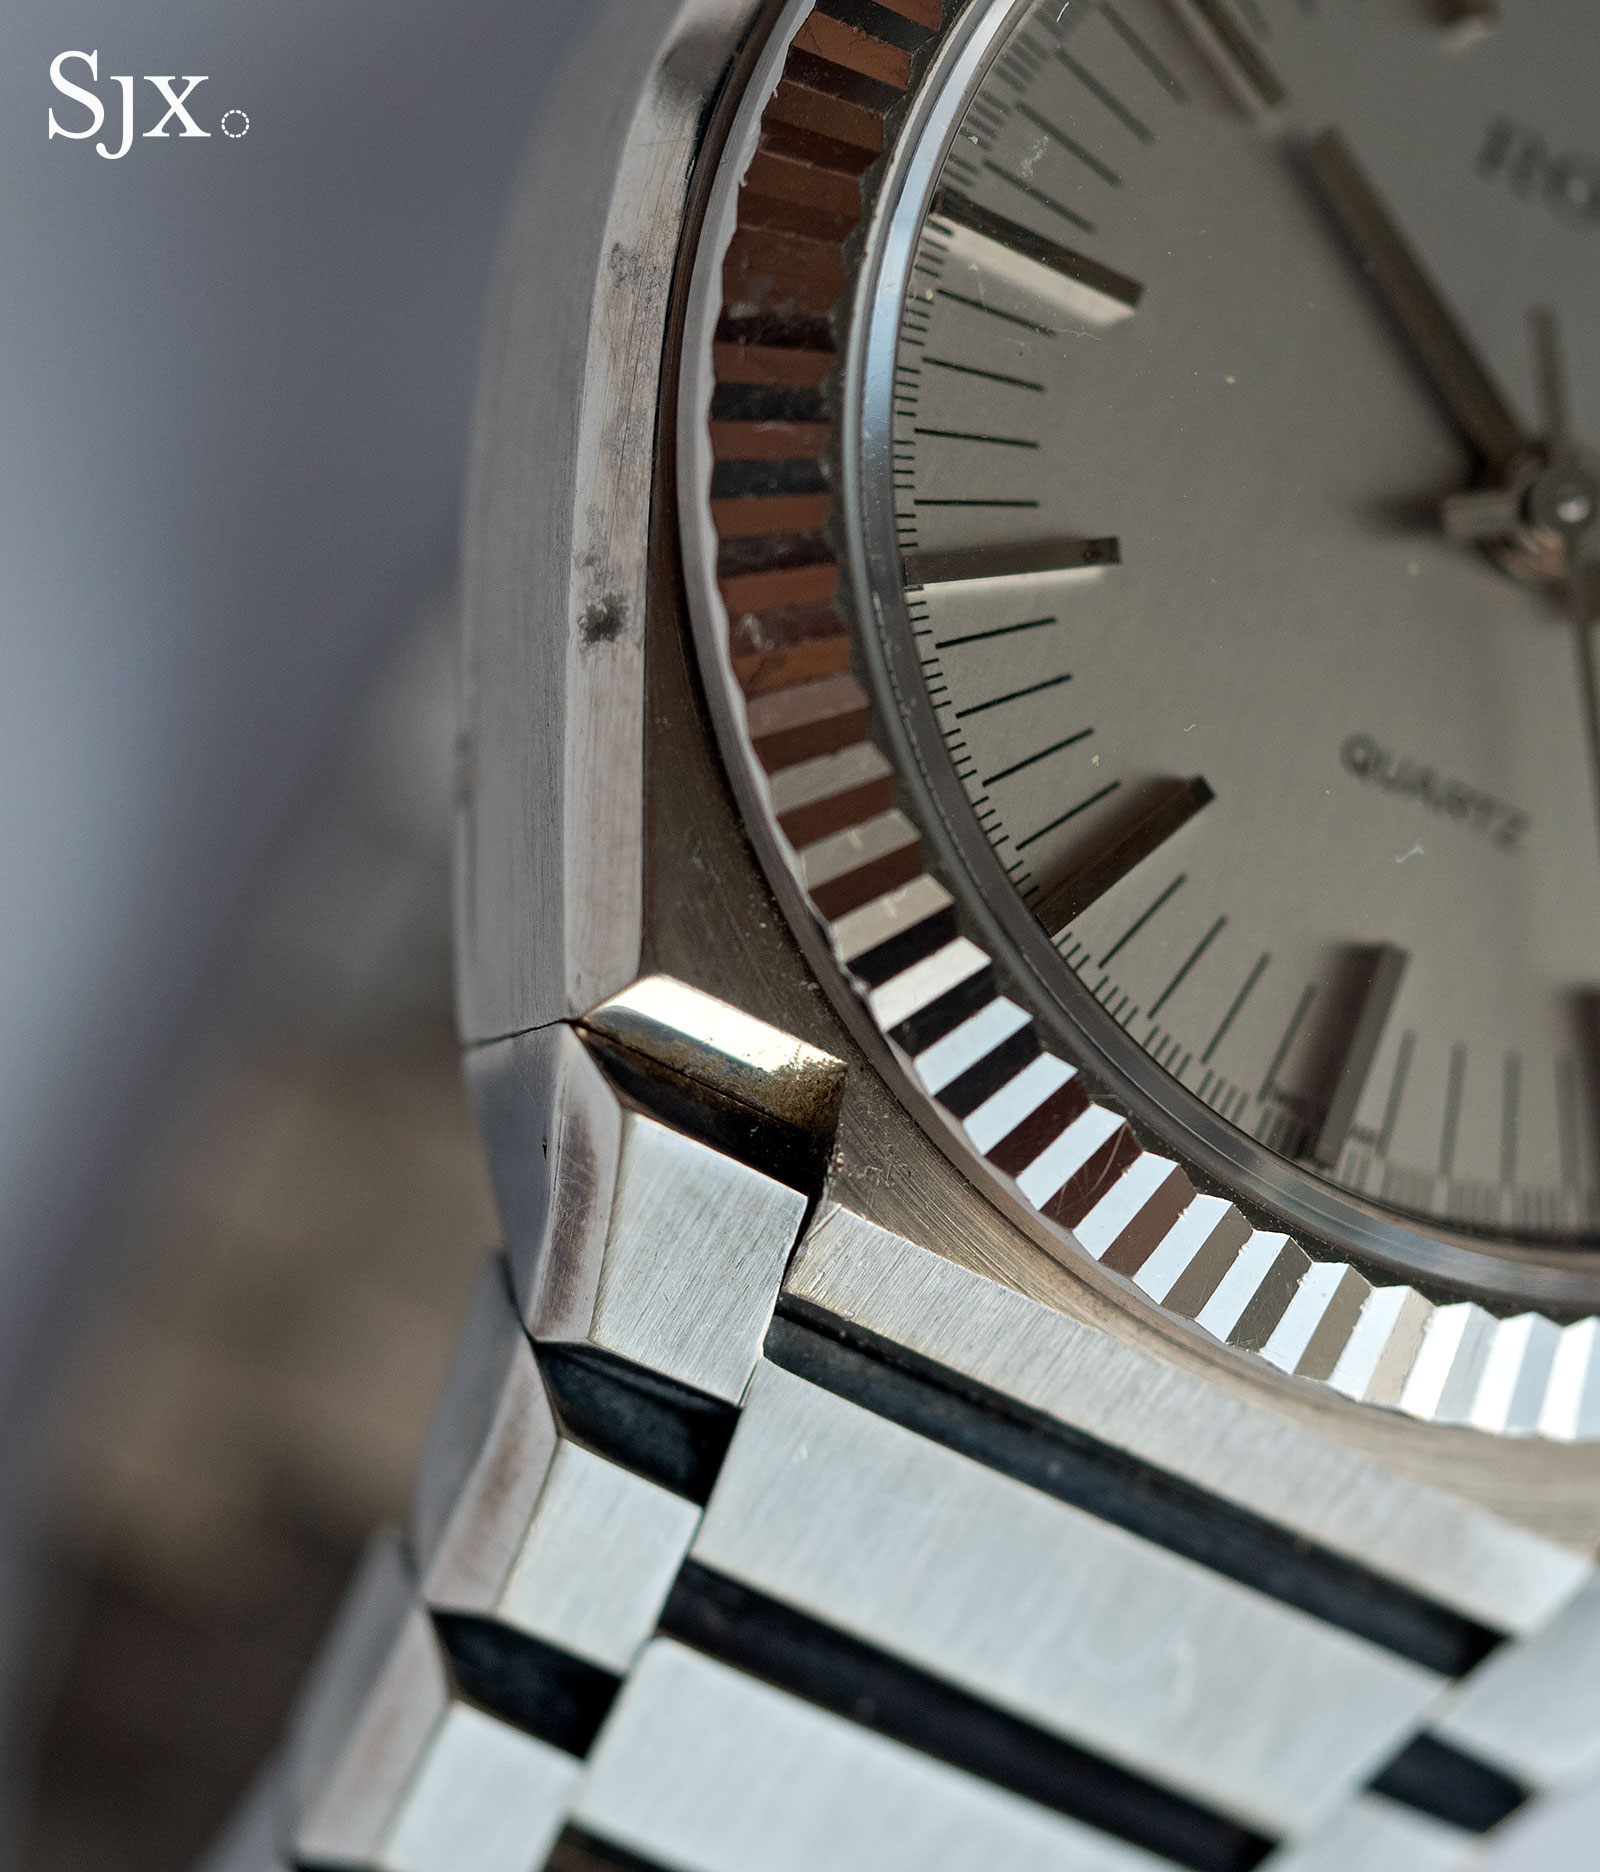 Rolex Beta 21 white gold 5